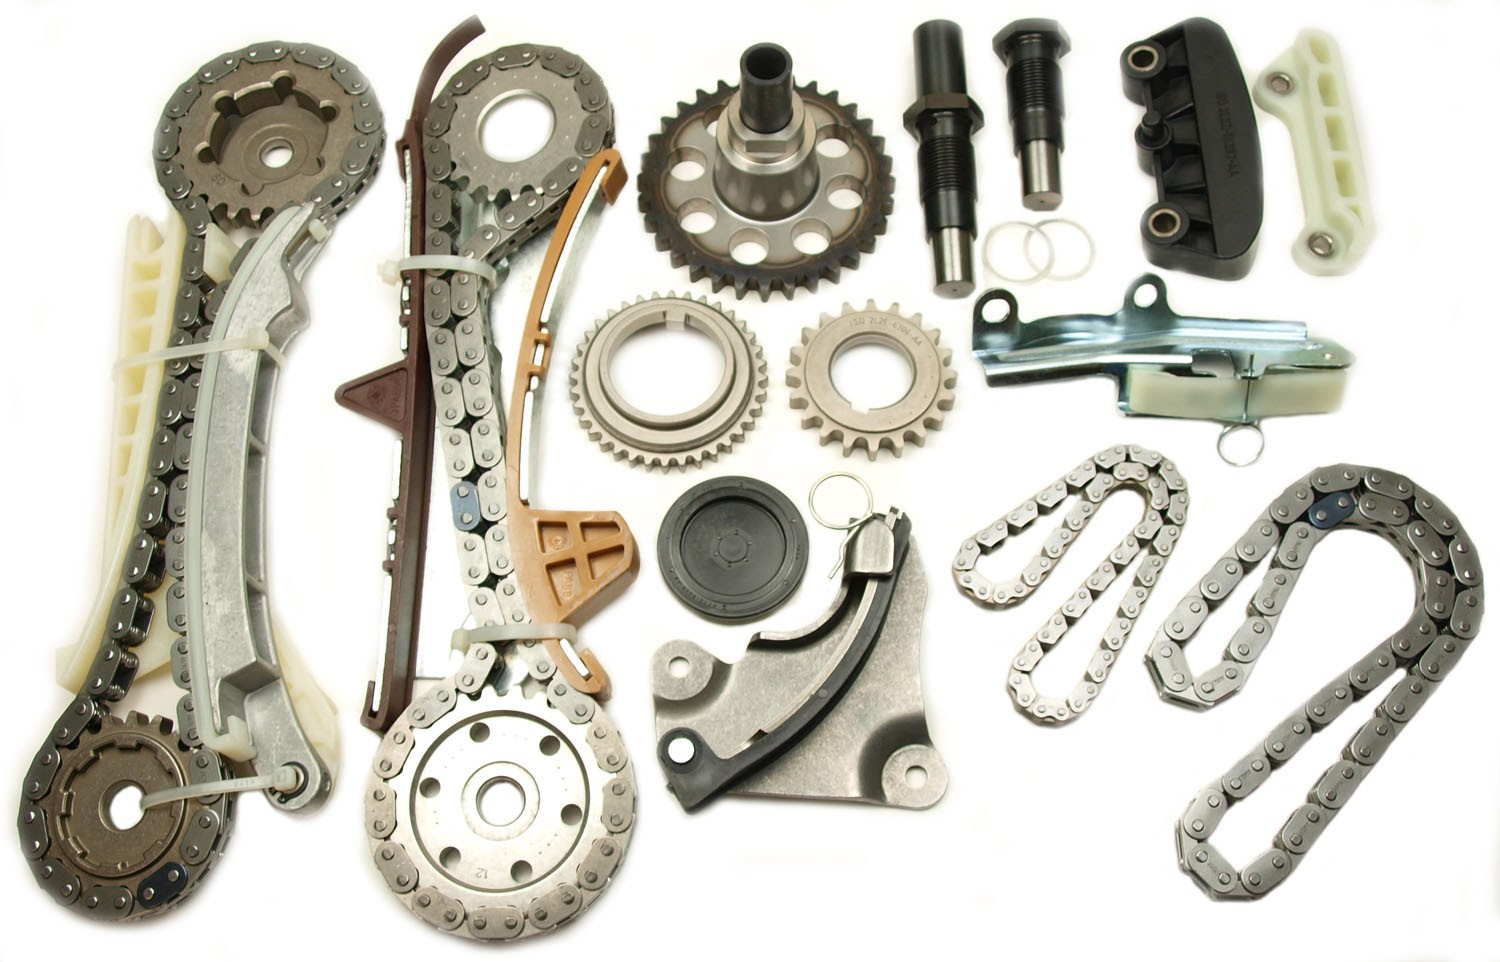 hight resolution of 2004 ford explorer engine timing chain kit ct 9 0398sb